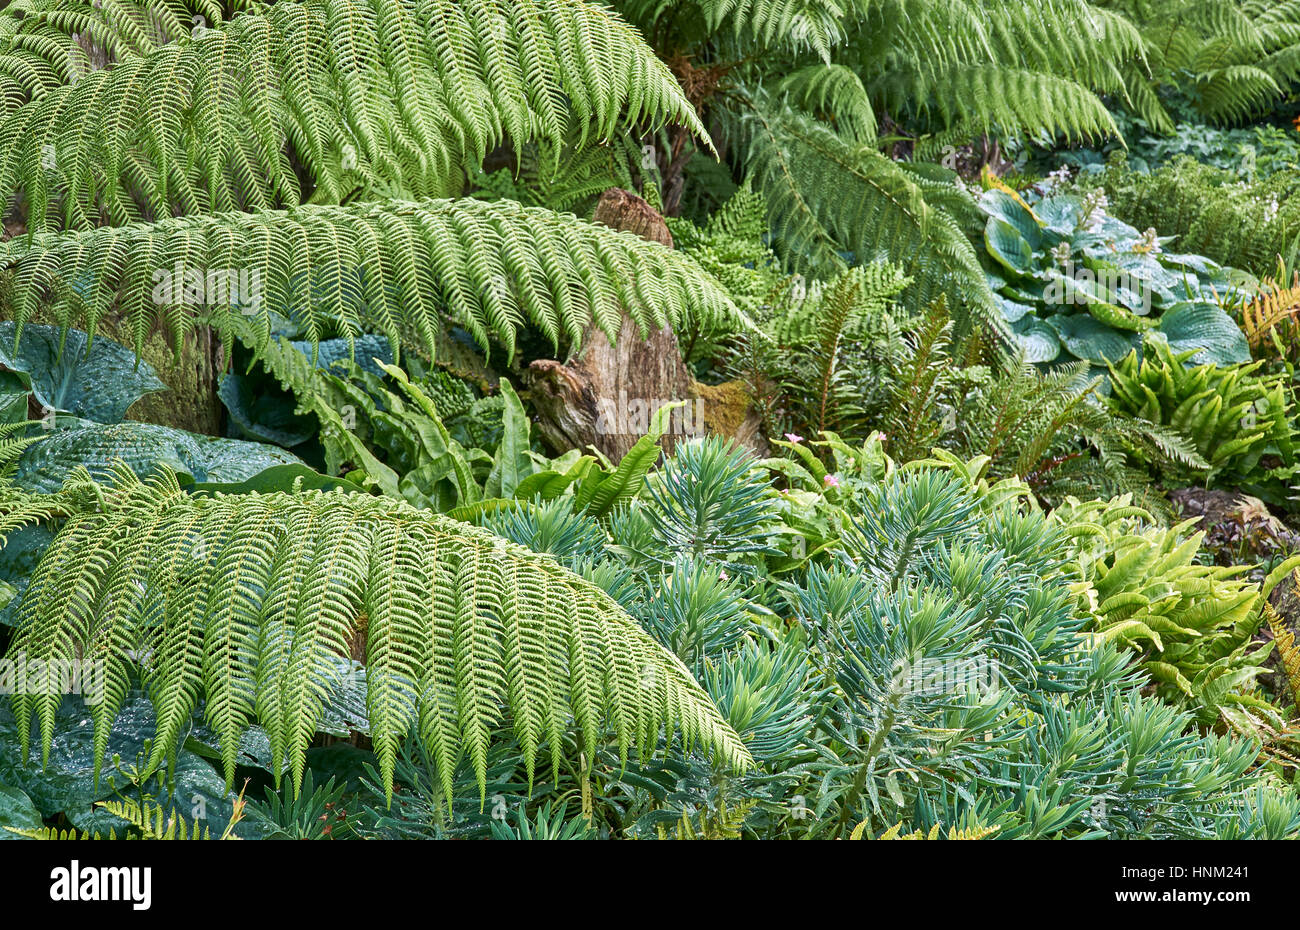 Evergreen foliage planting with ferns - Stock Image